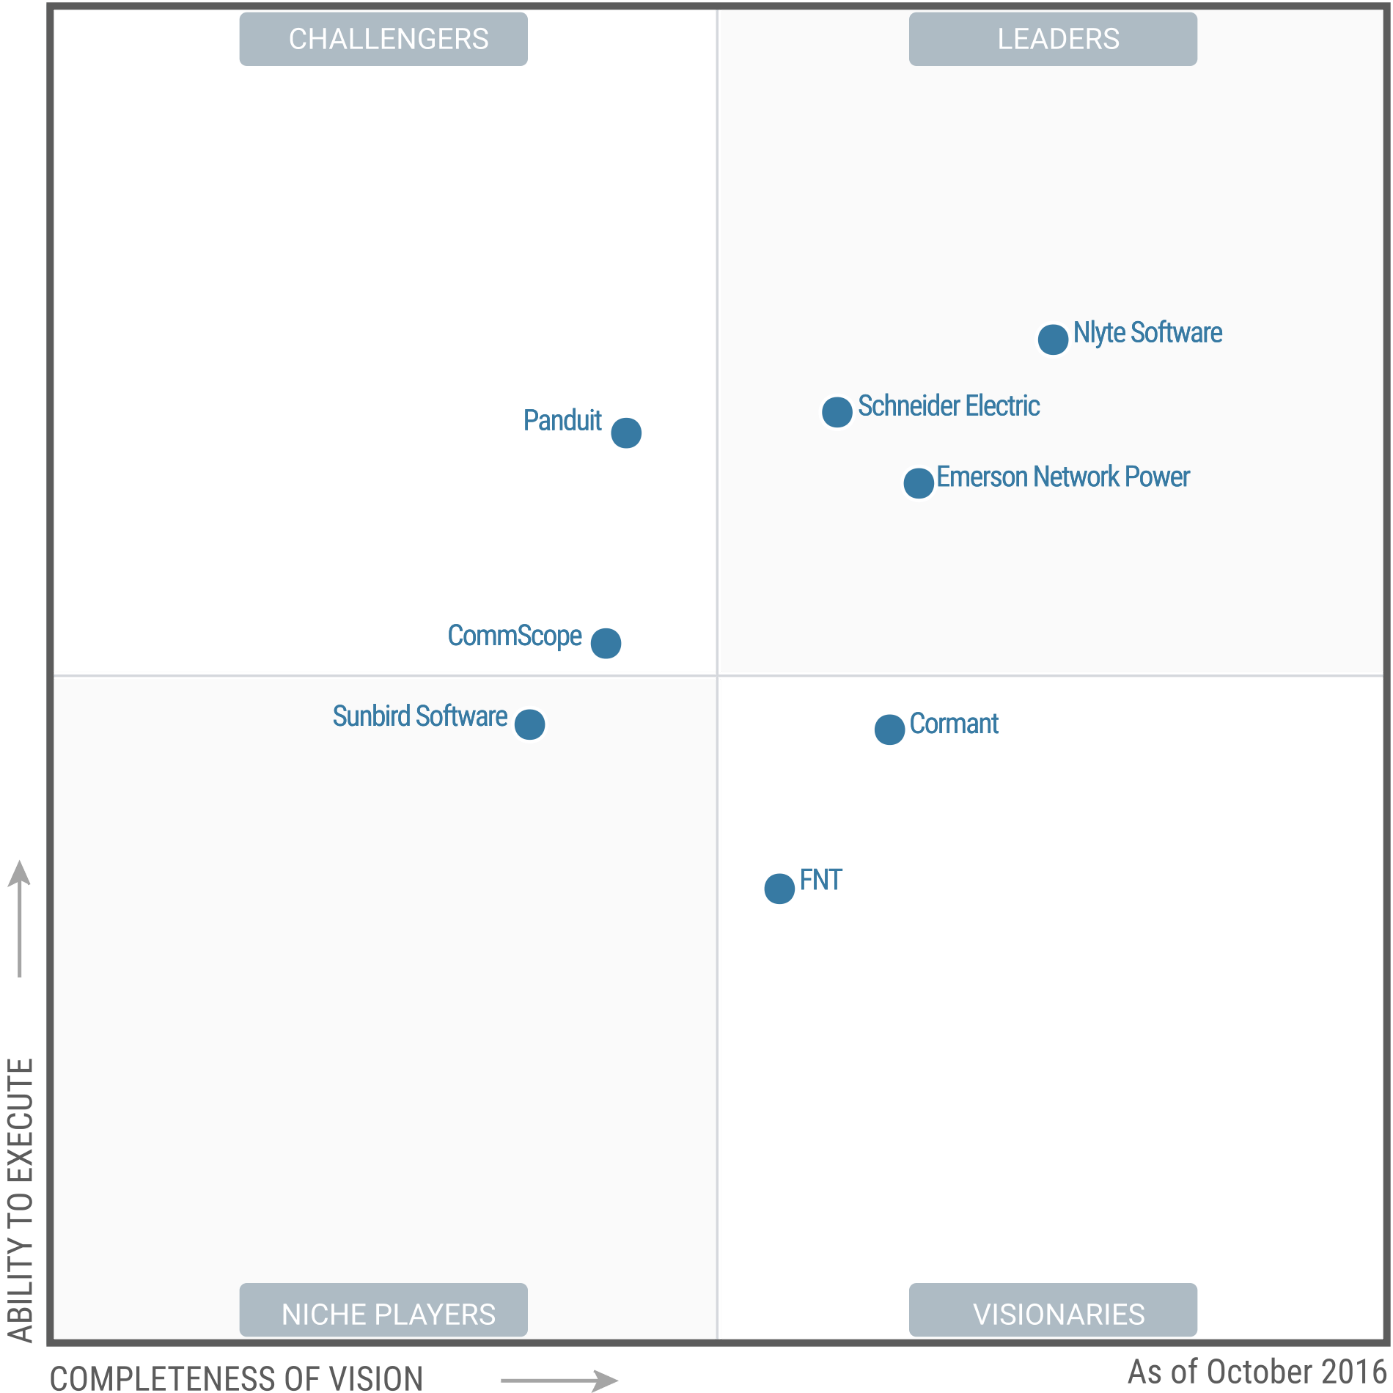 Gartner Magic Quadrant for Data Center Infrastructure